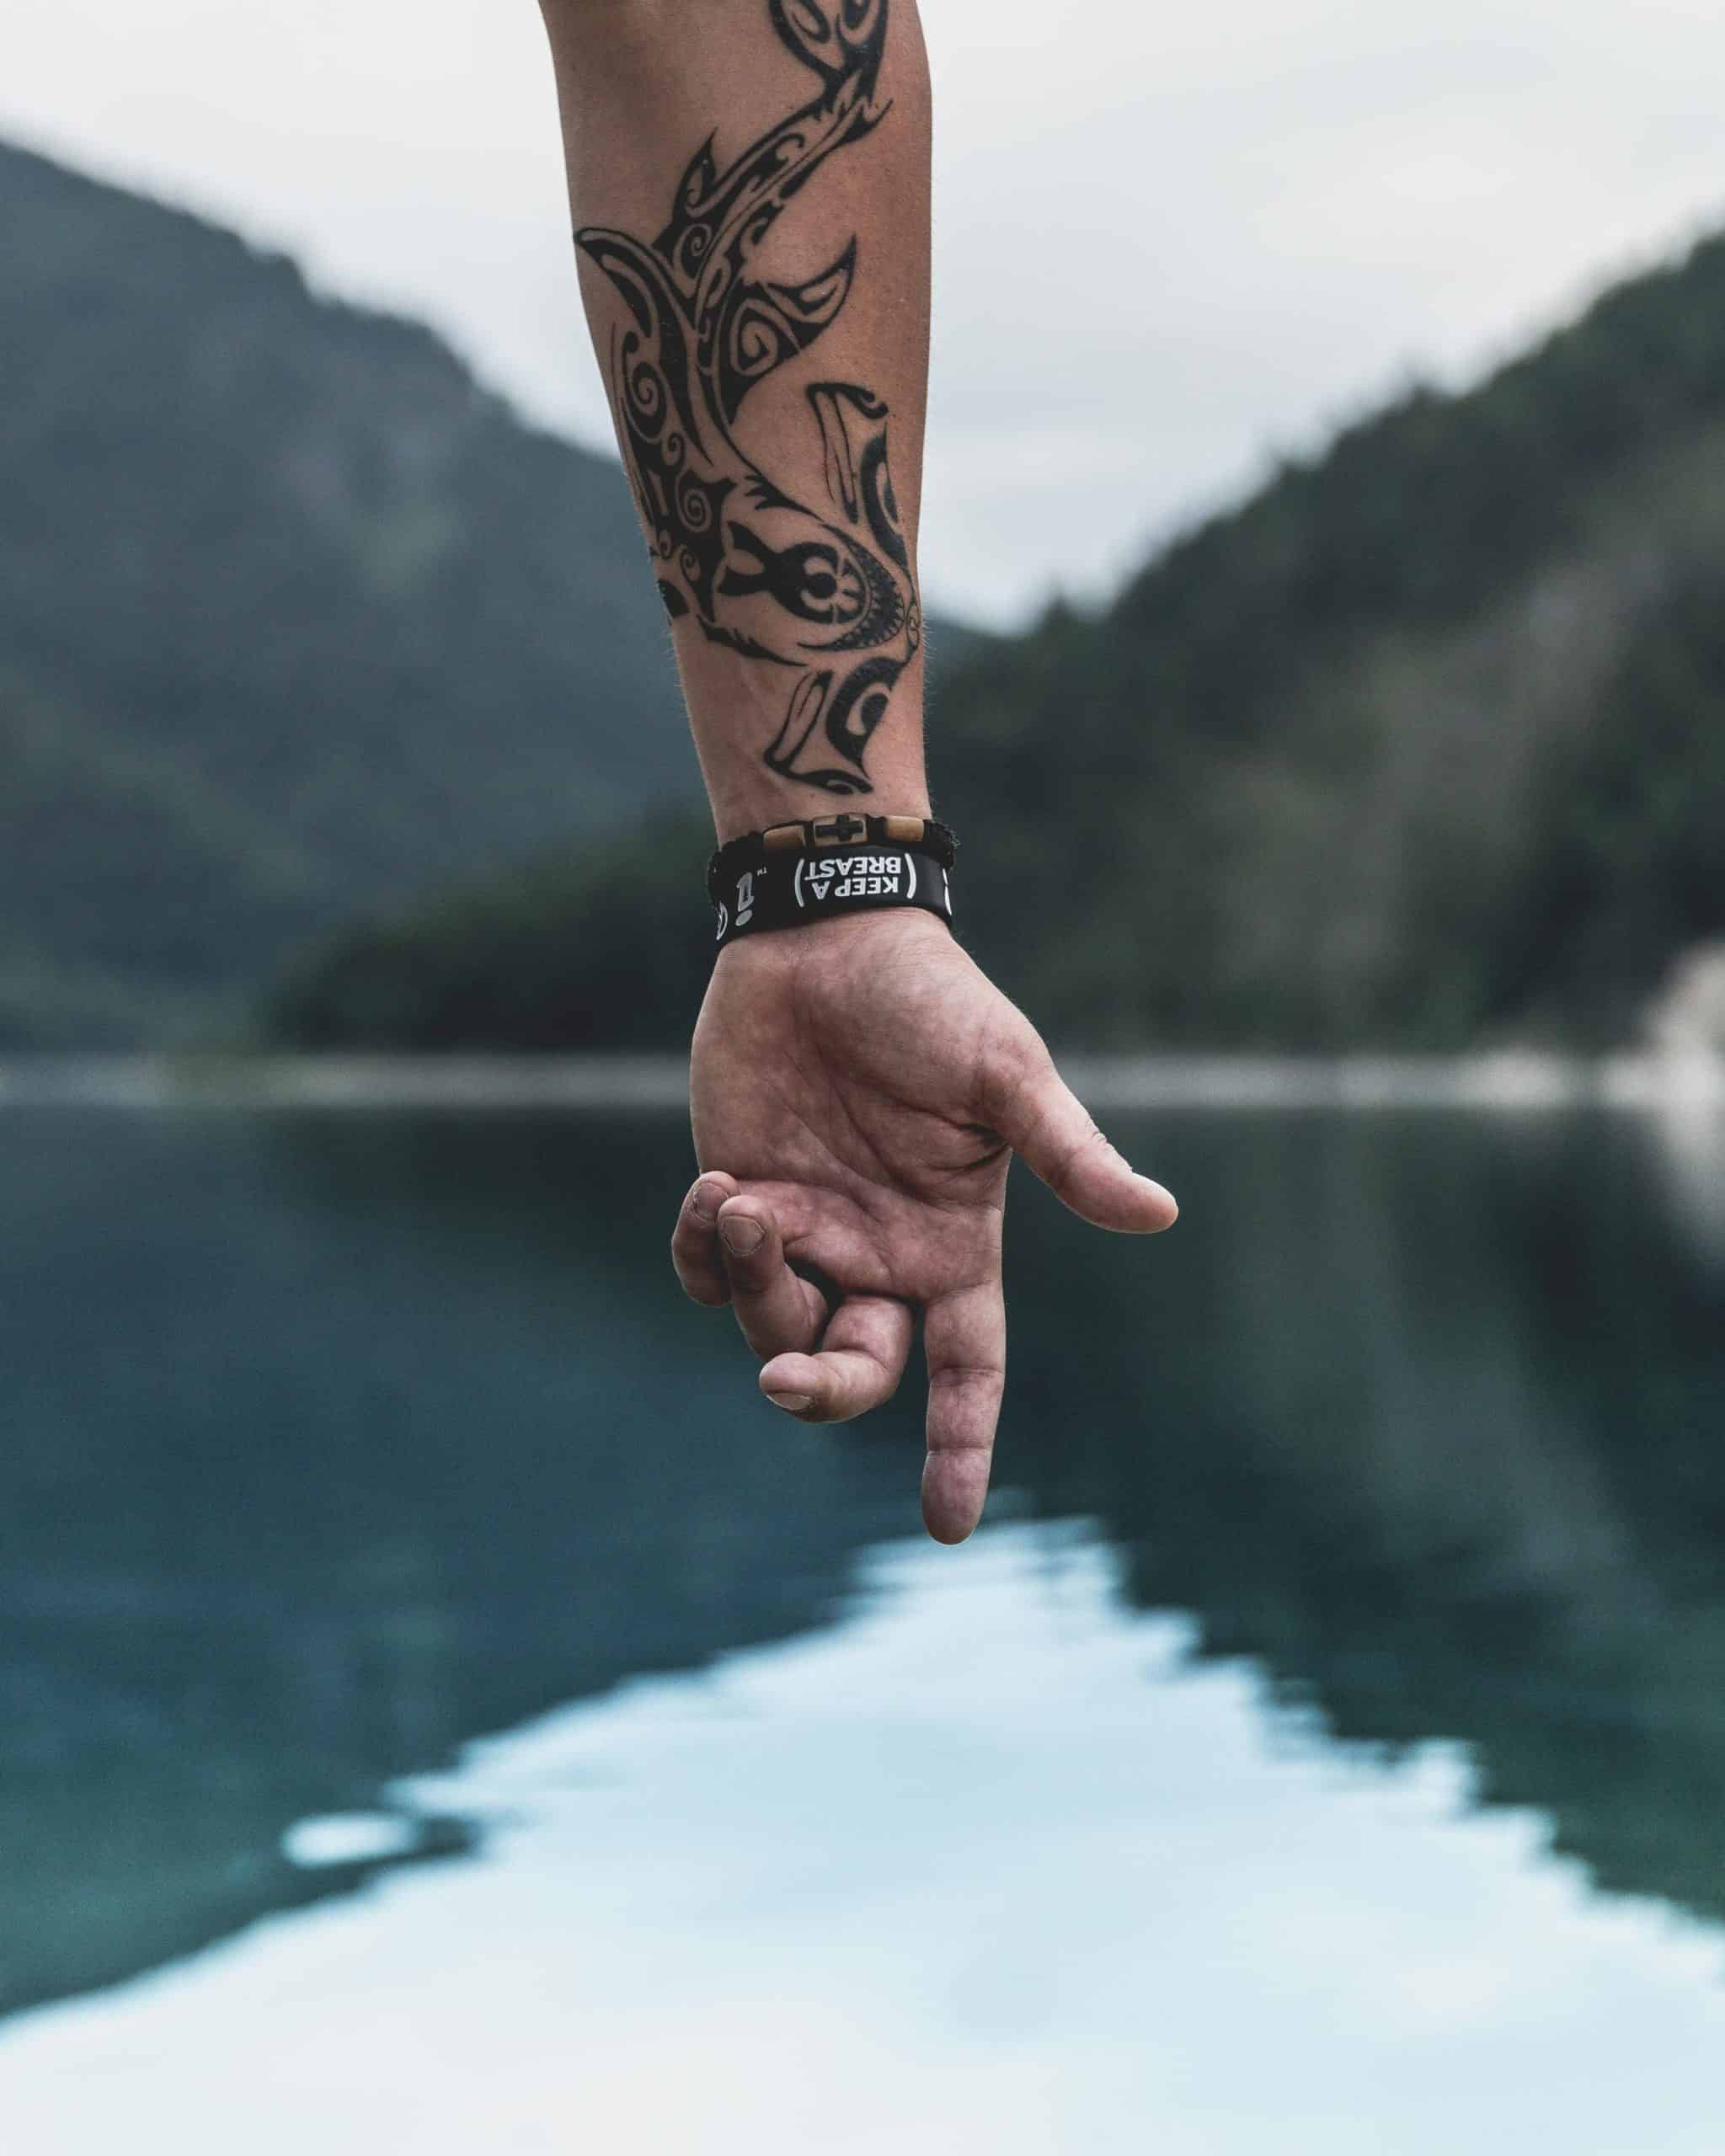 Tattoo Design: Things To Know Before You Become A Tattoo Artist